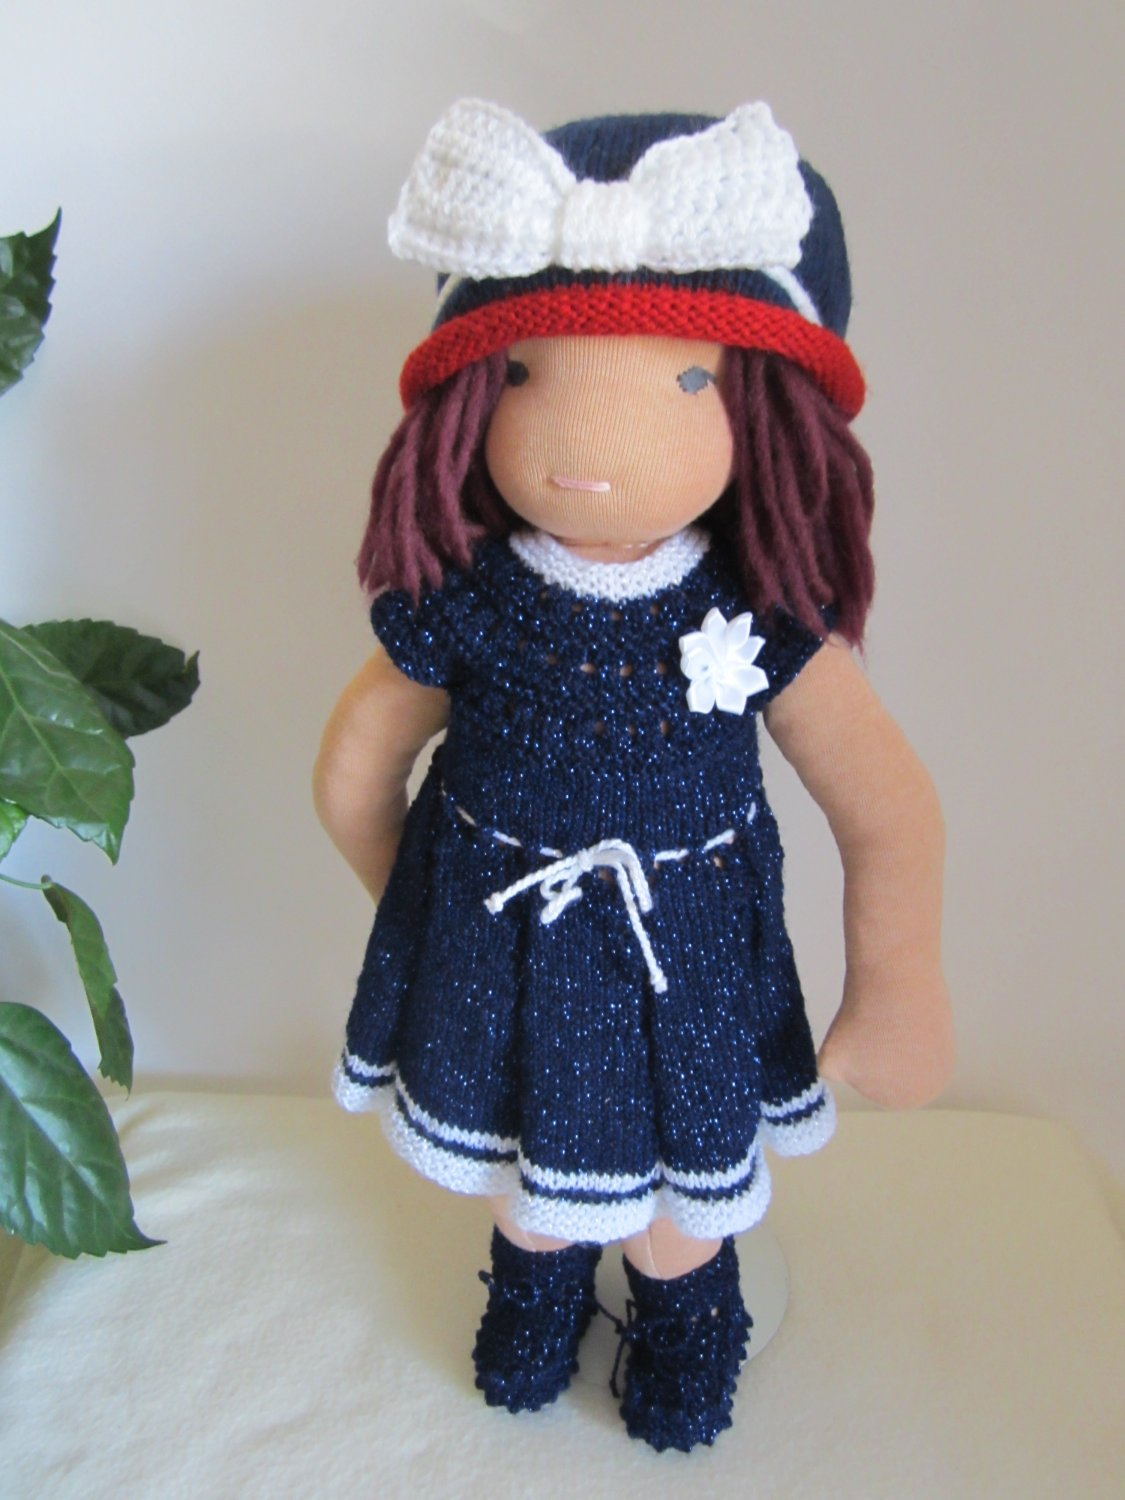 Knitted set for 16 inches Waldorf and similar sizes dolls